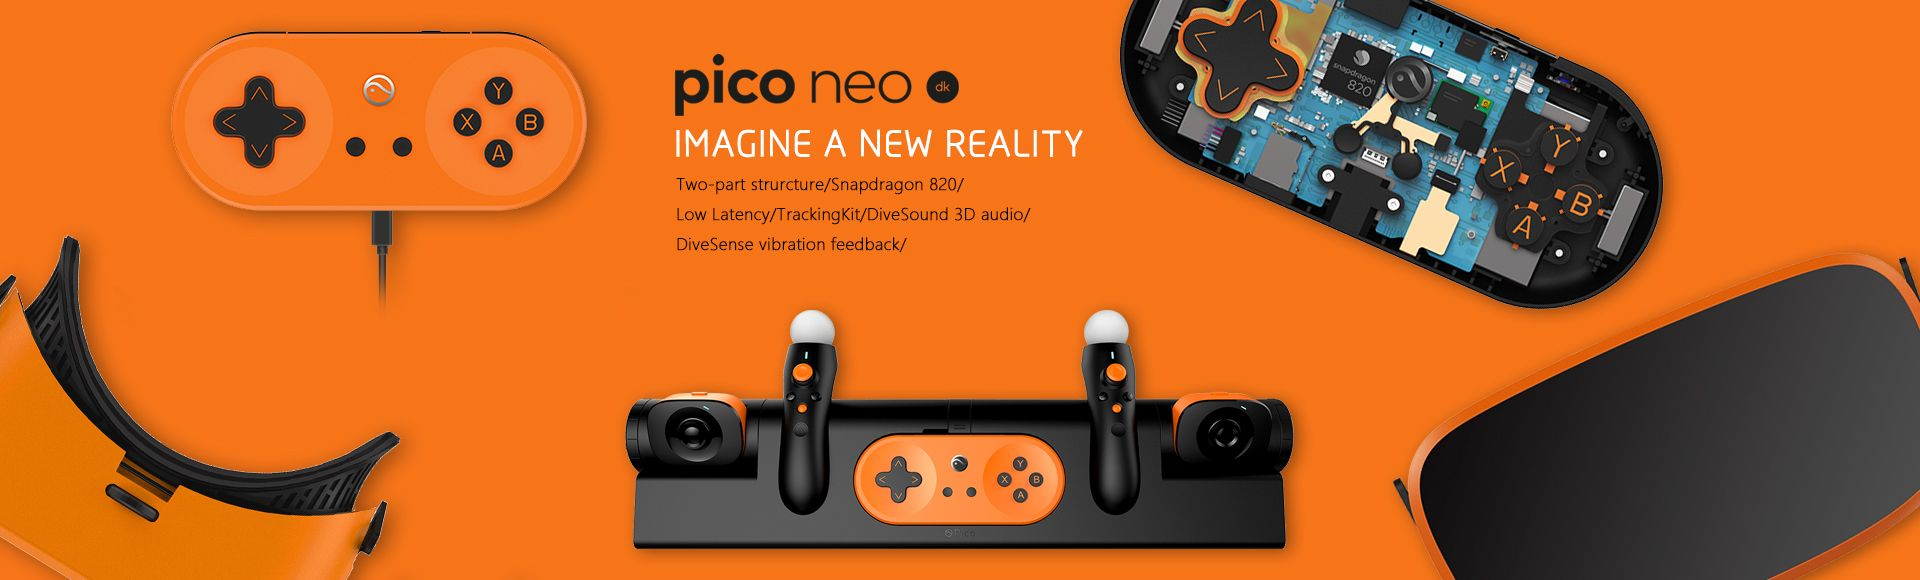 PICO NEO VR -  All-in-one Snapdragon 820 2K 3G 1080P FOV102 Immersive 3D VR Virtua Reality Android Headset Handle